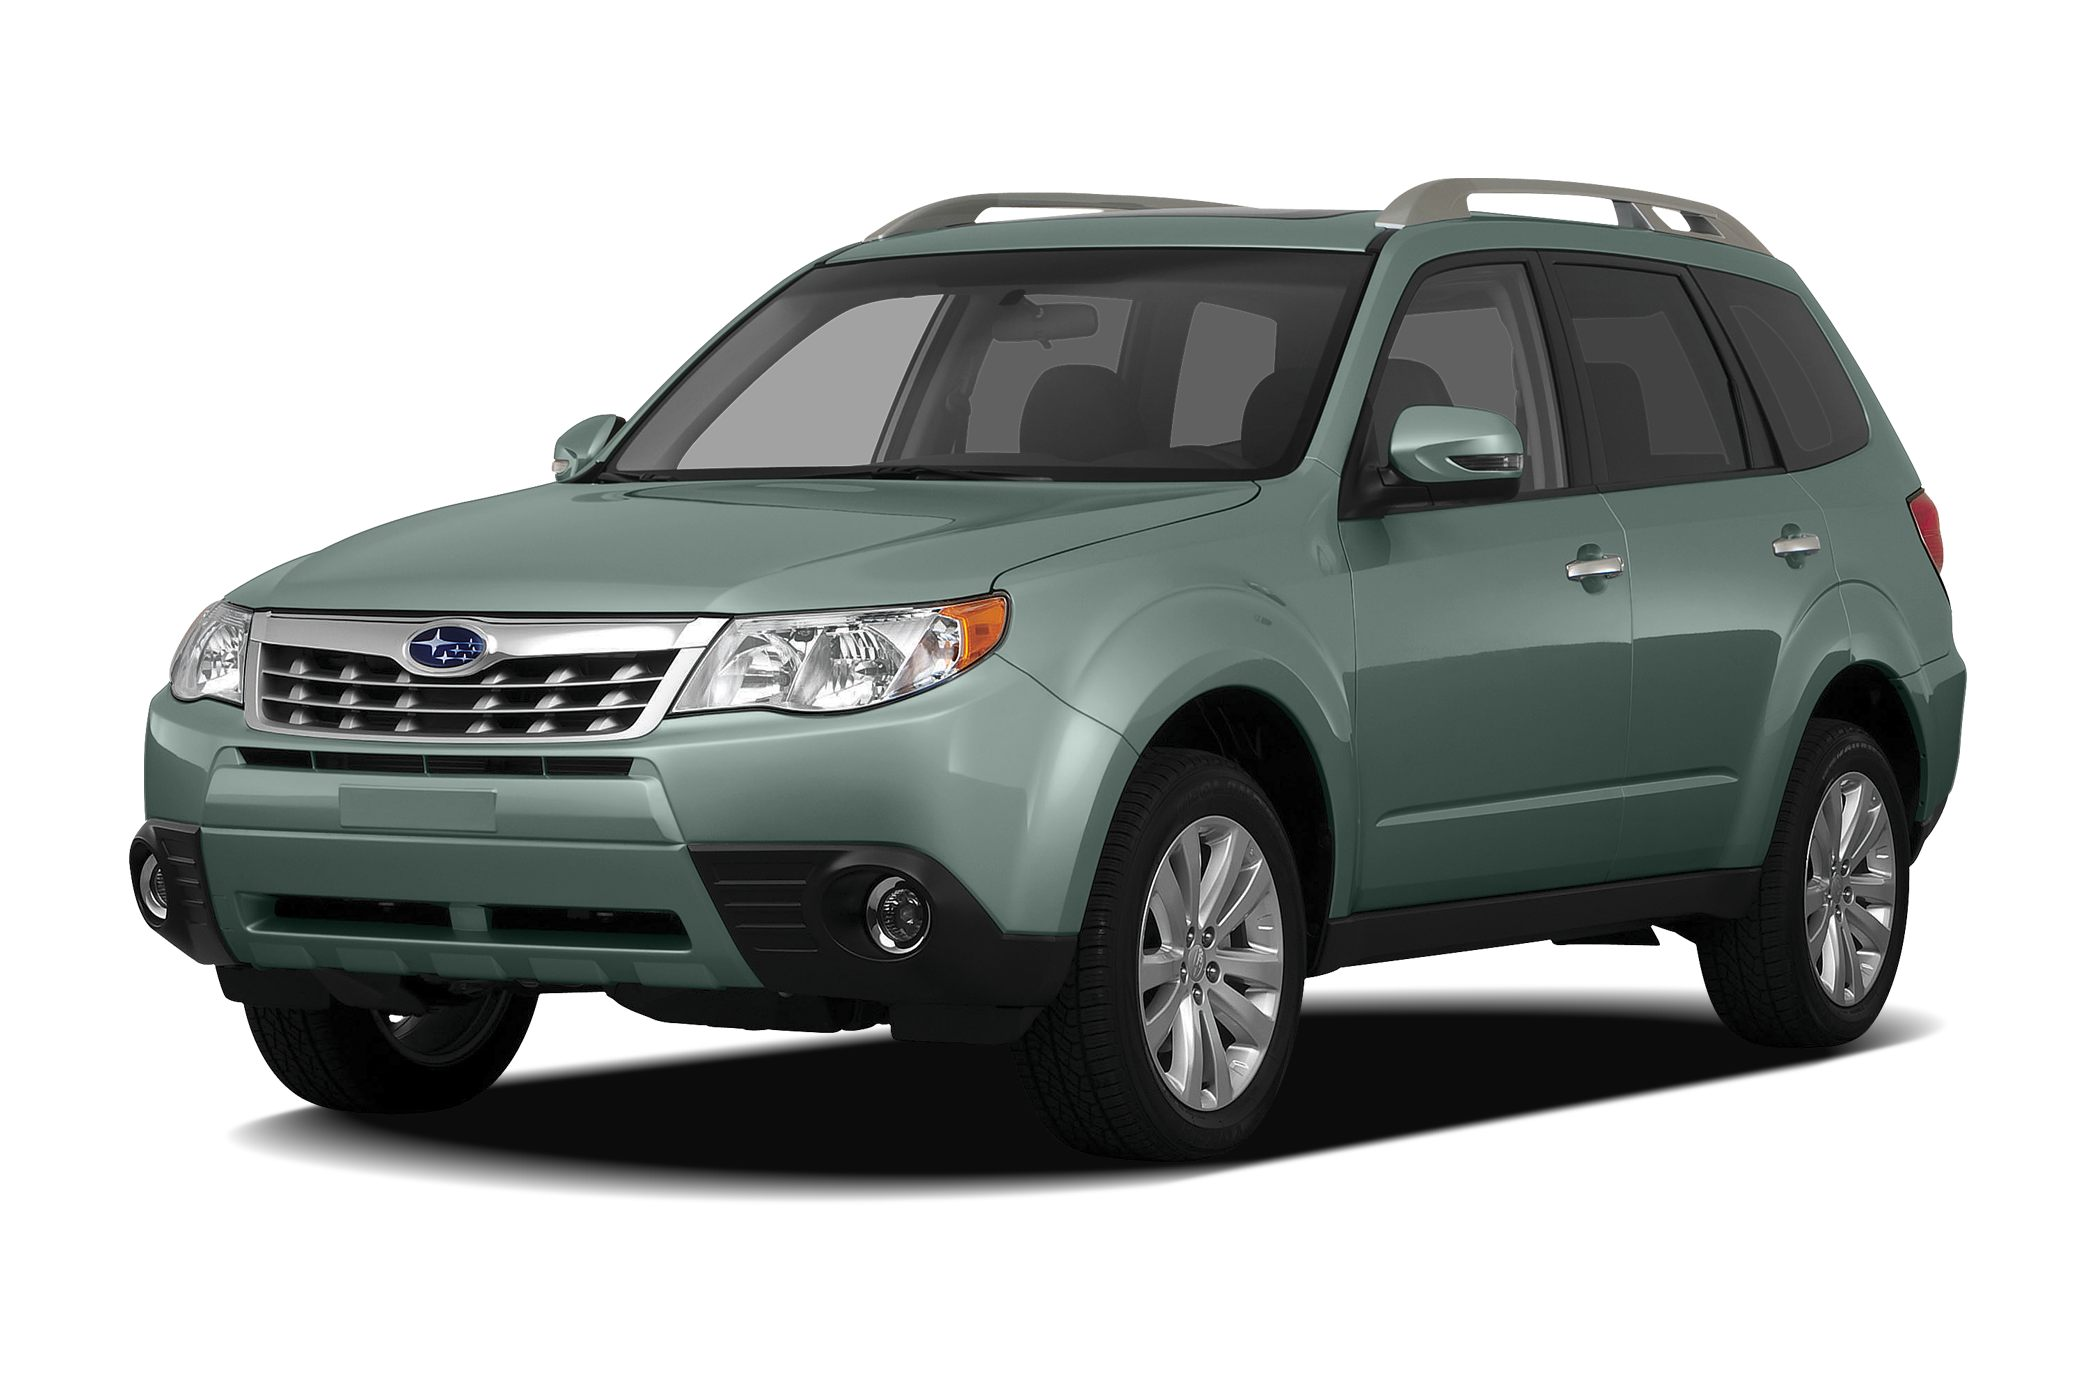 2011 Subaru Forester 2.5 X SUV for sale in Weaverville for $13,999 with 113,654 miles.